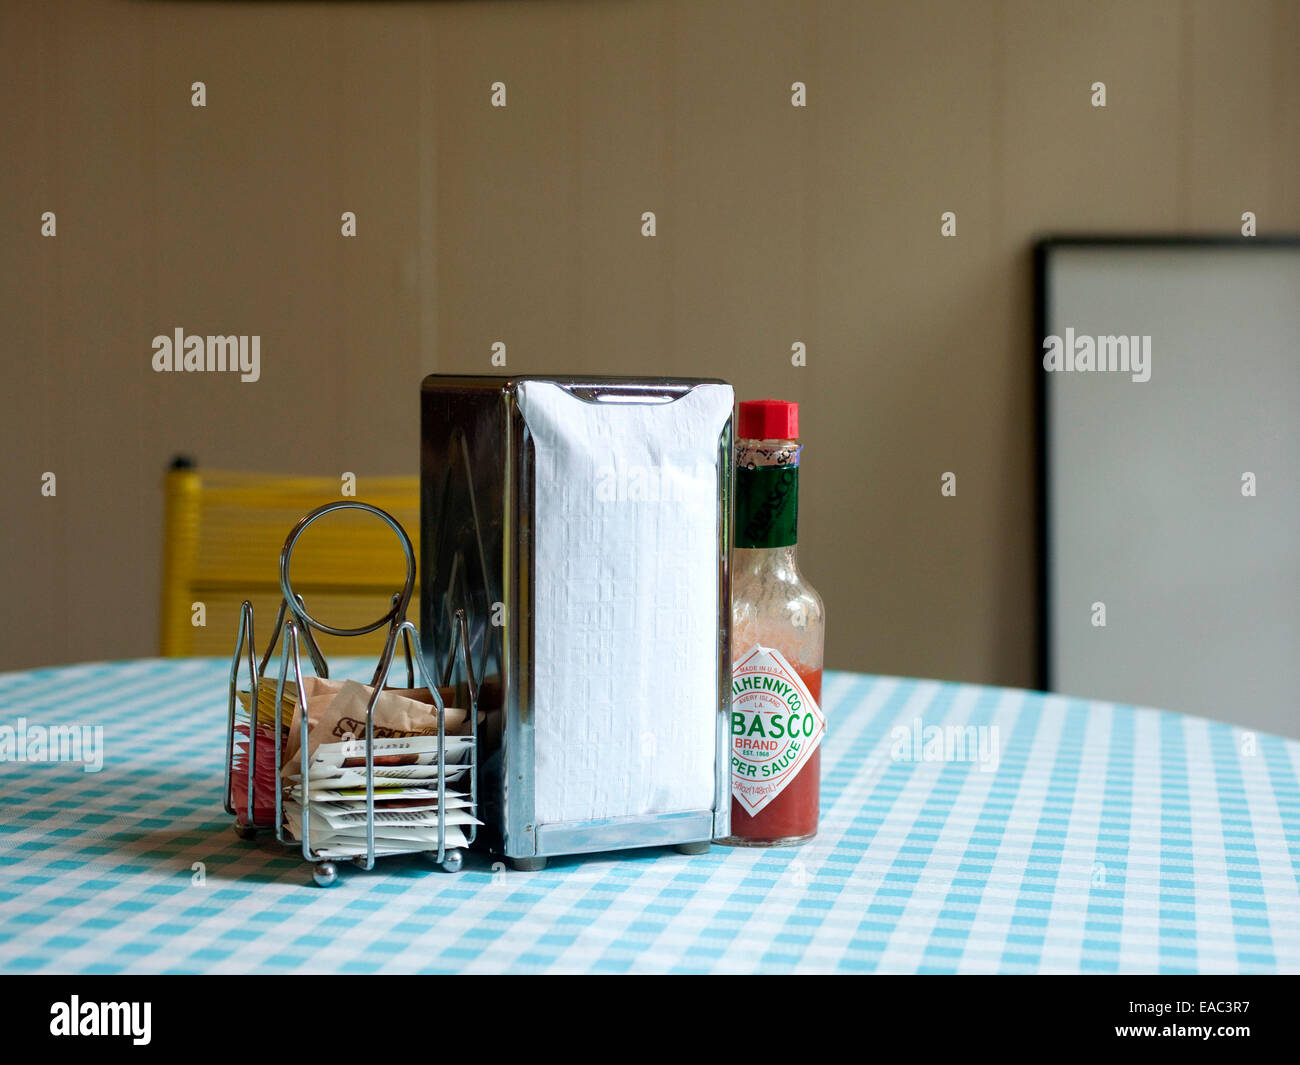 Vichy bleu avec des serviettes de table cire de vêtir et de condiments à diner Photo Stock